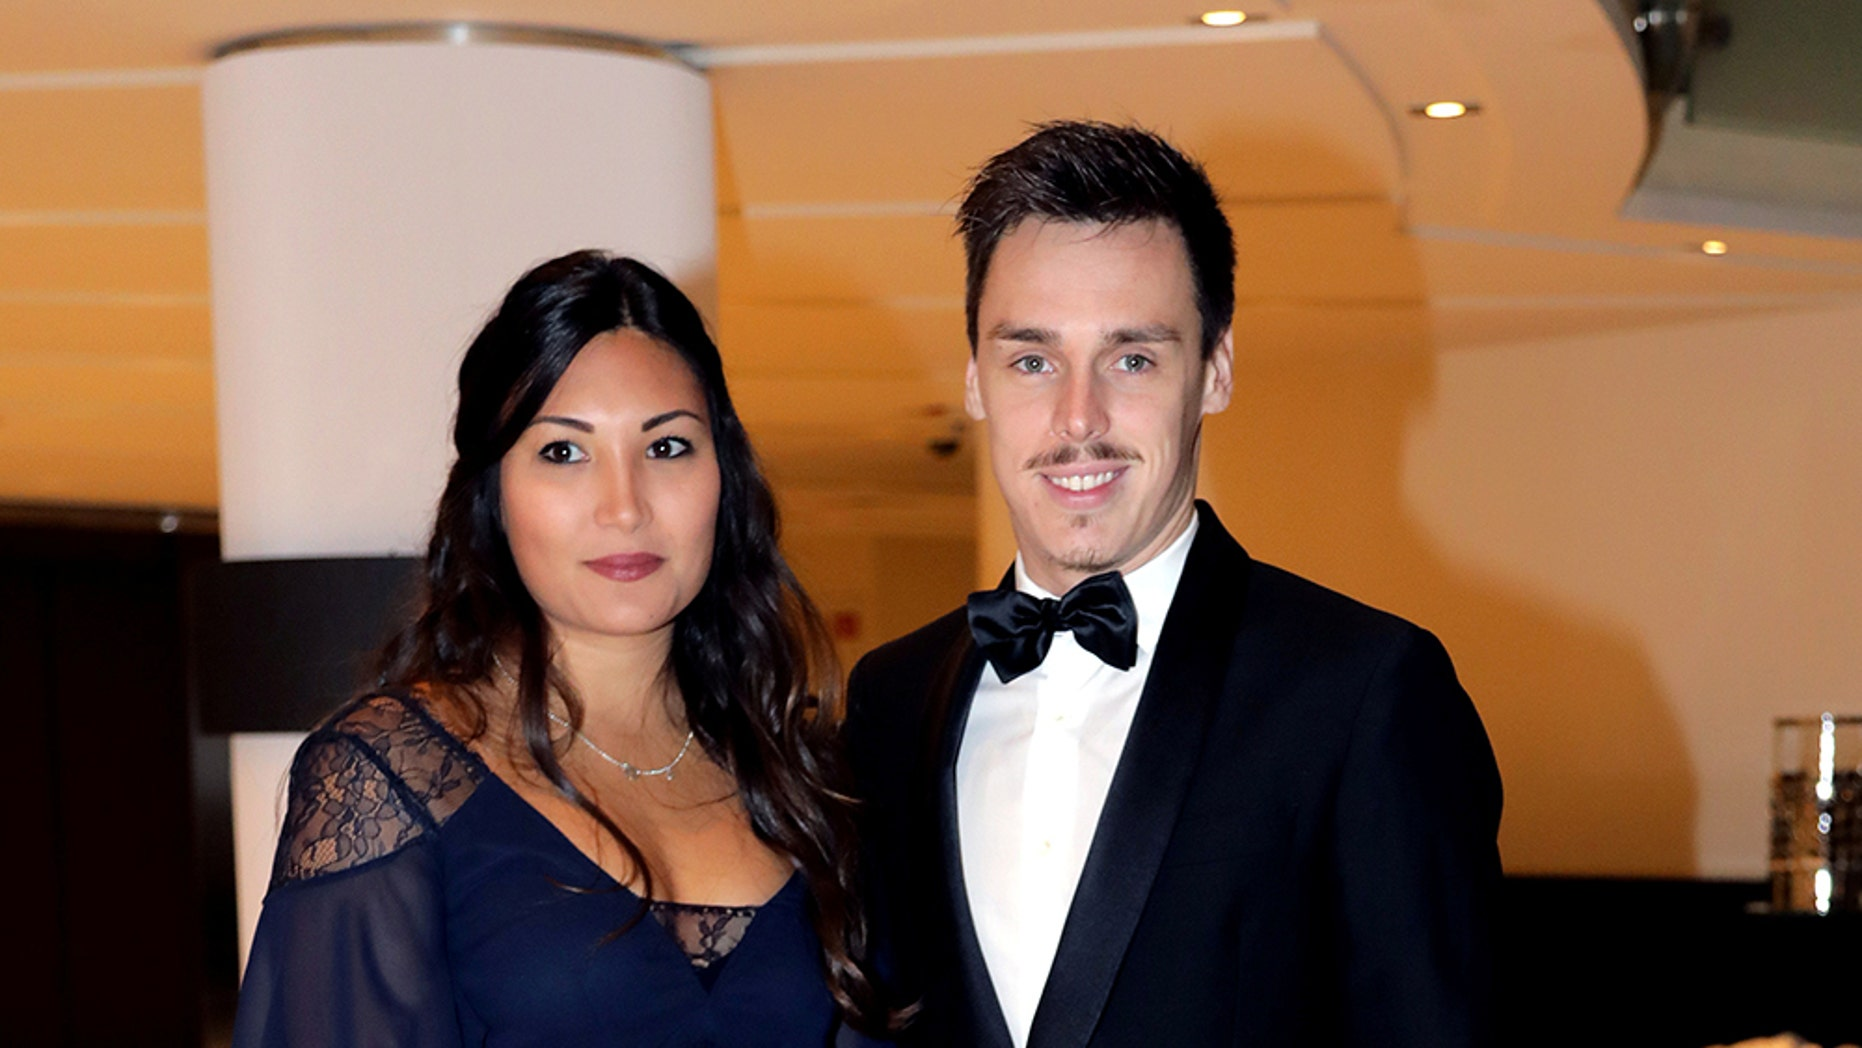 Louis Ducruet, the son of Monaco's Princess Stephanie, and his fiancée met over four years ago when they were both attending Western Carolina University in the U.S.